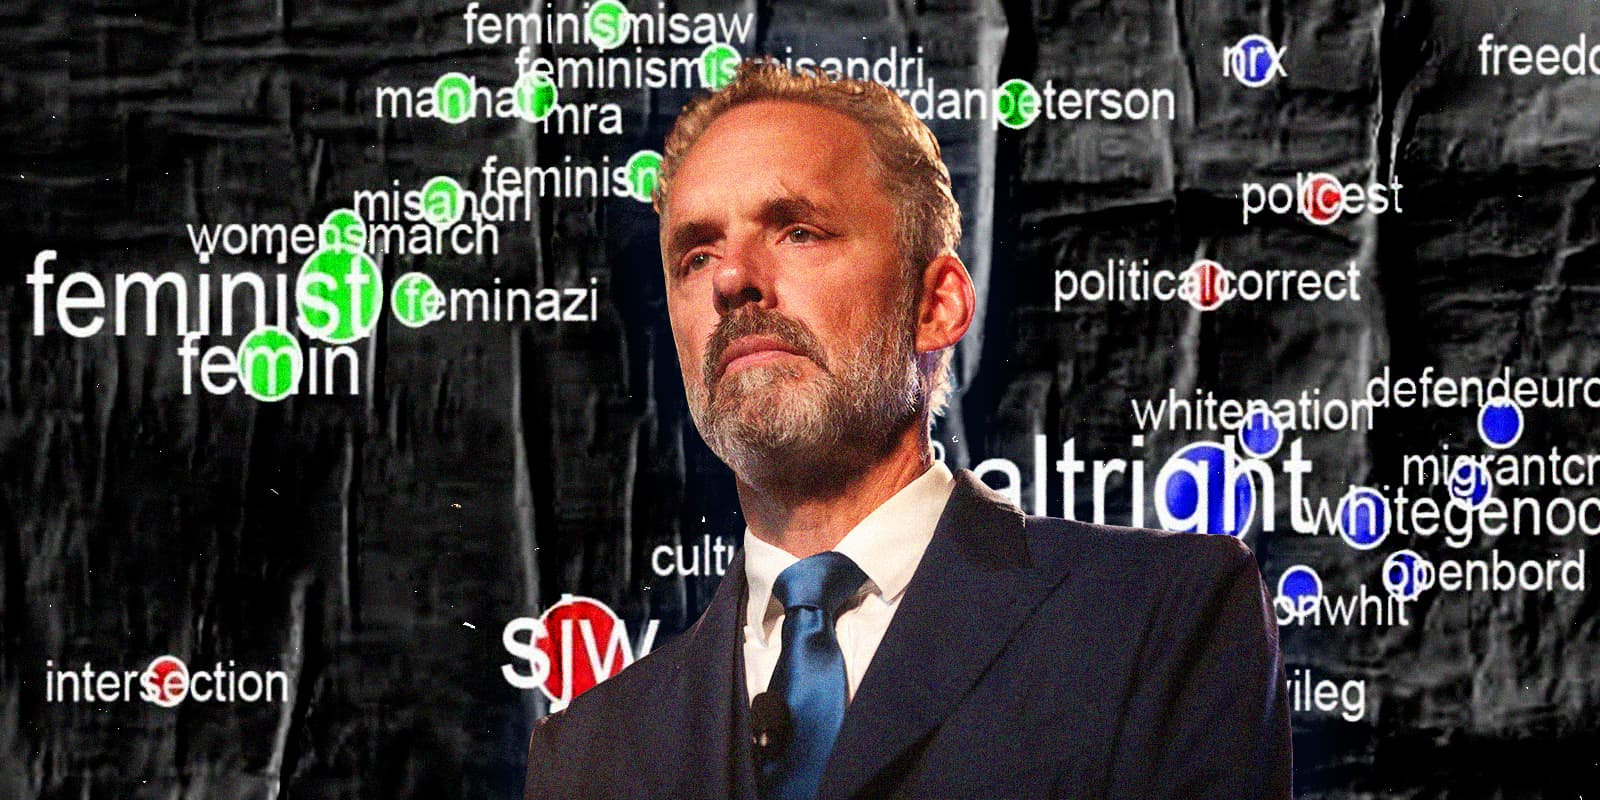 Jordan Peterson is not a gateway drug to the alt-right